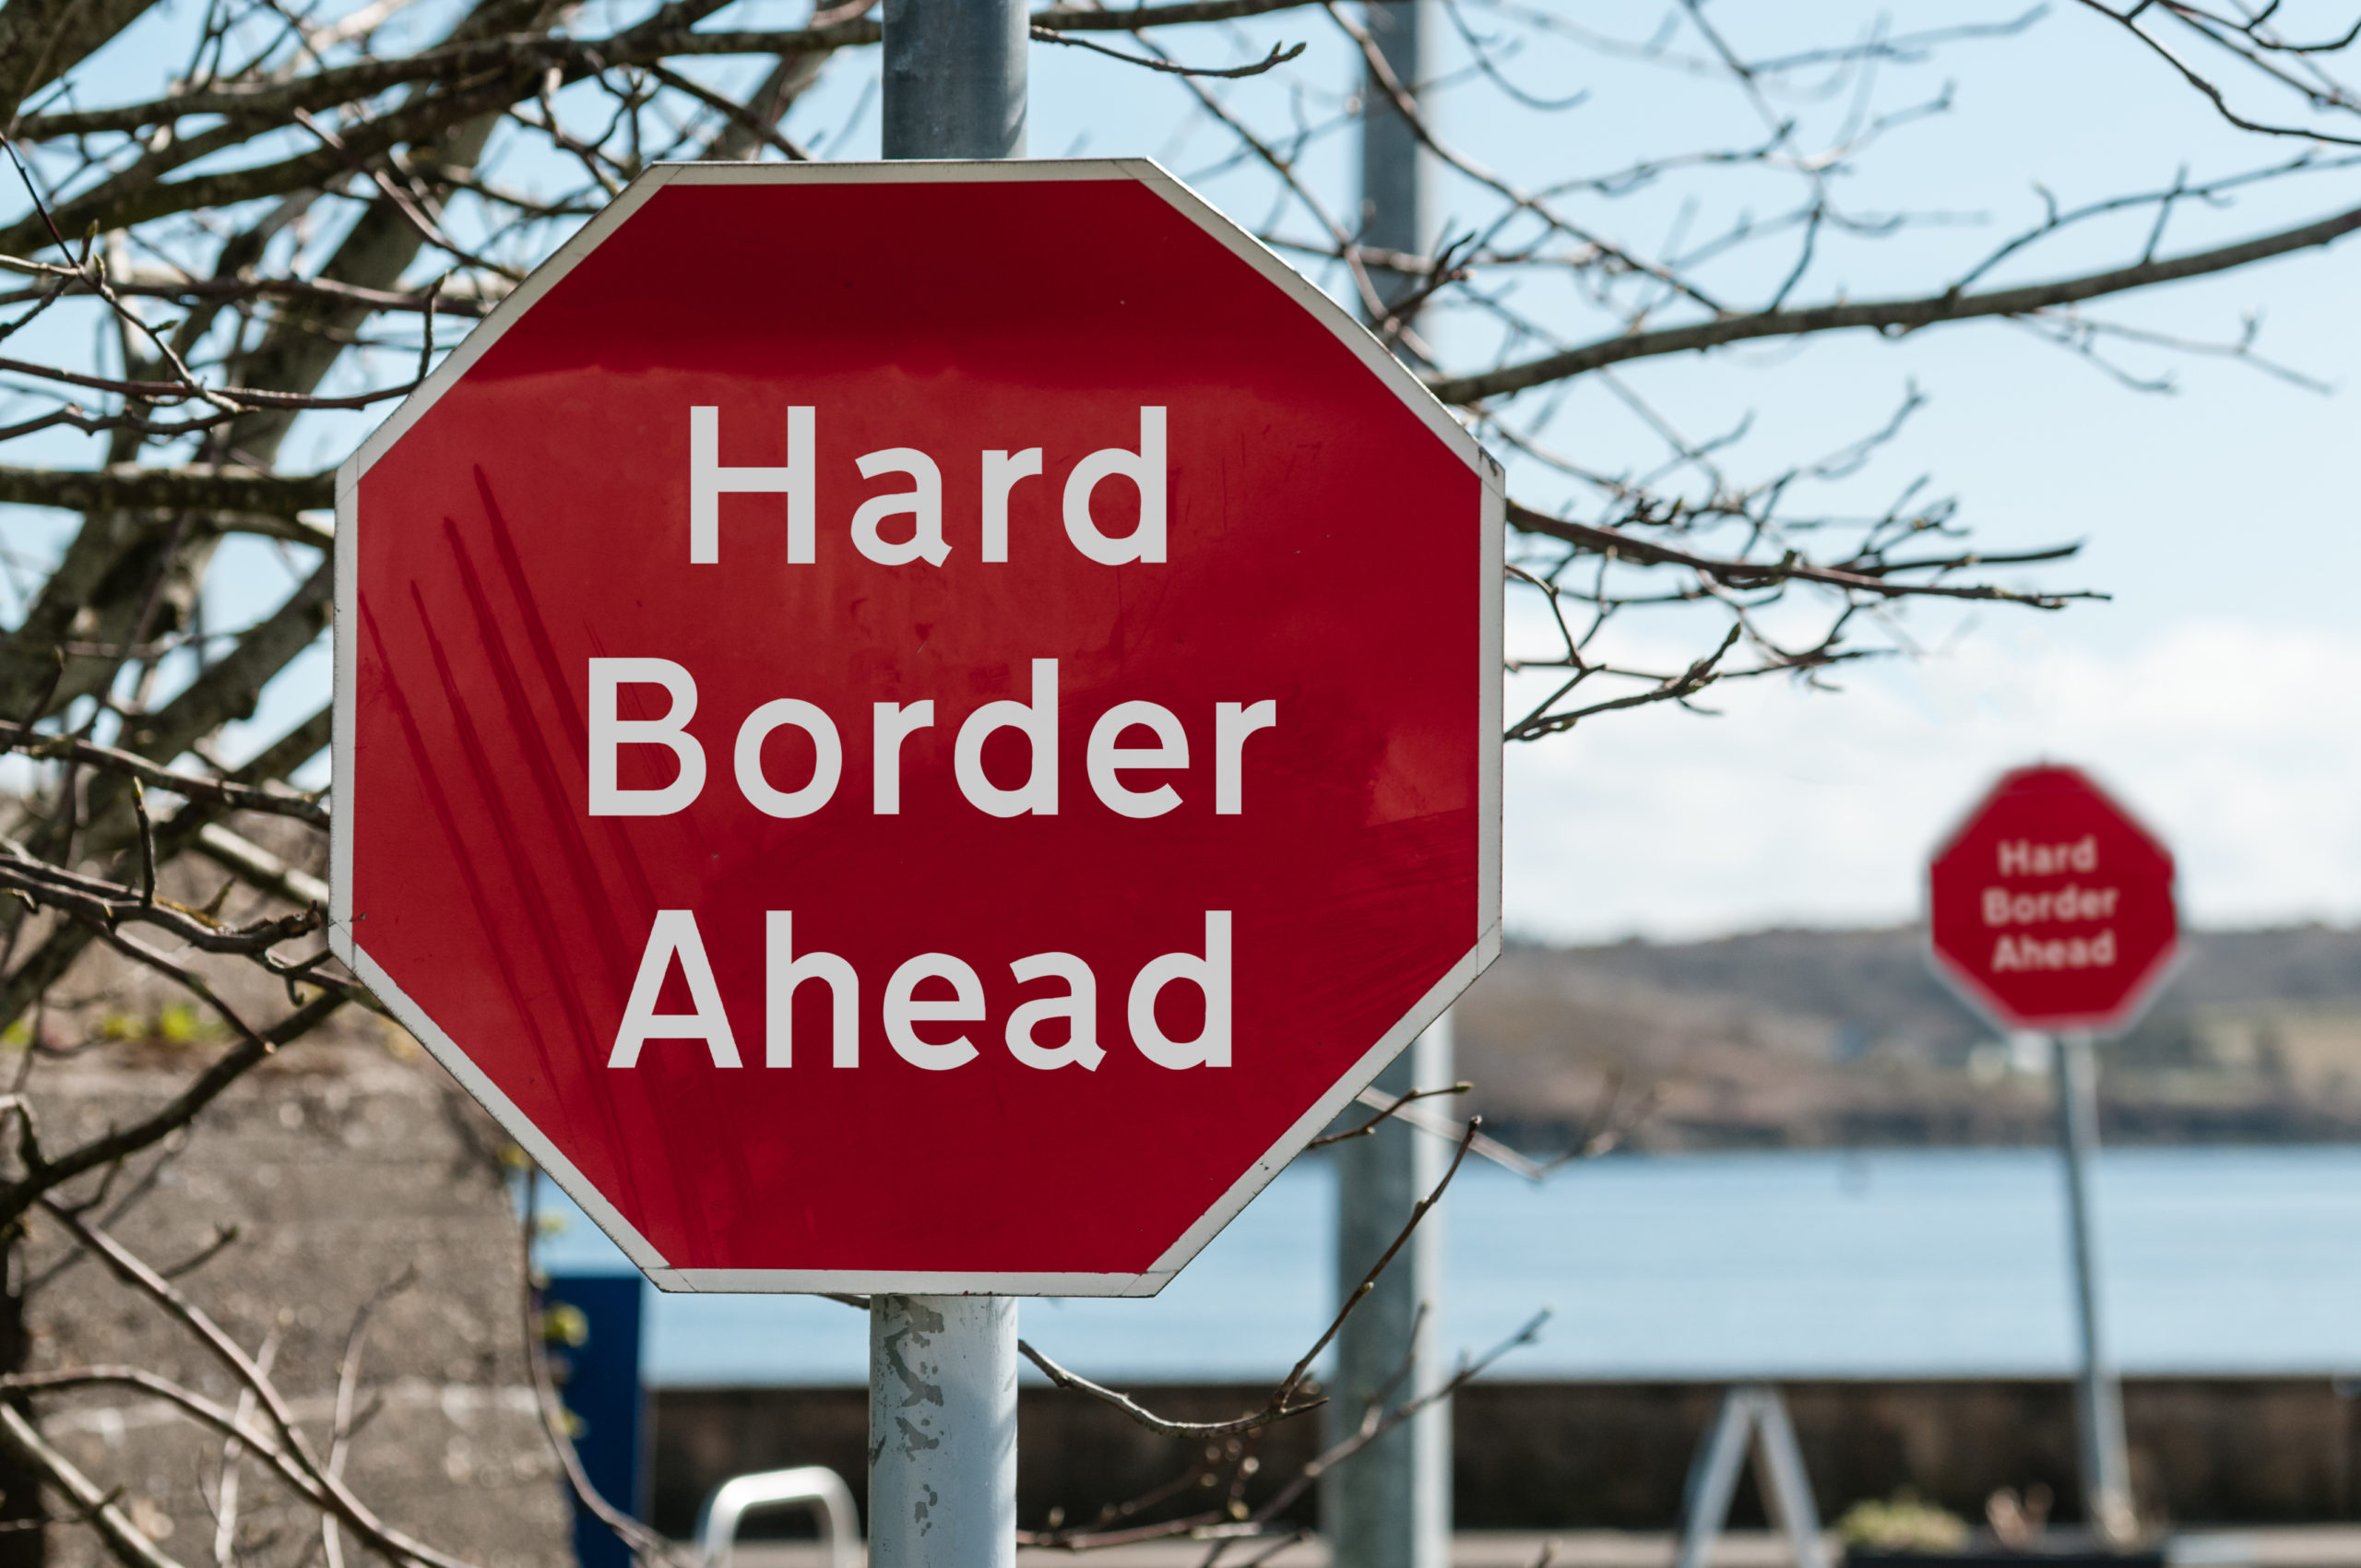 For or against a reunification of Ireland?